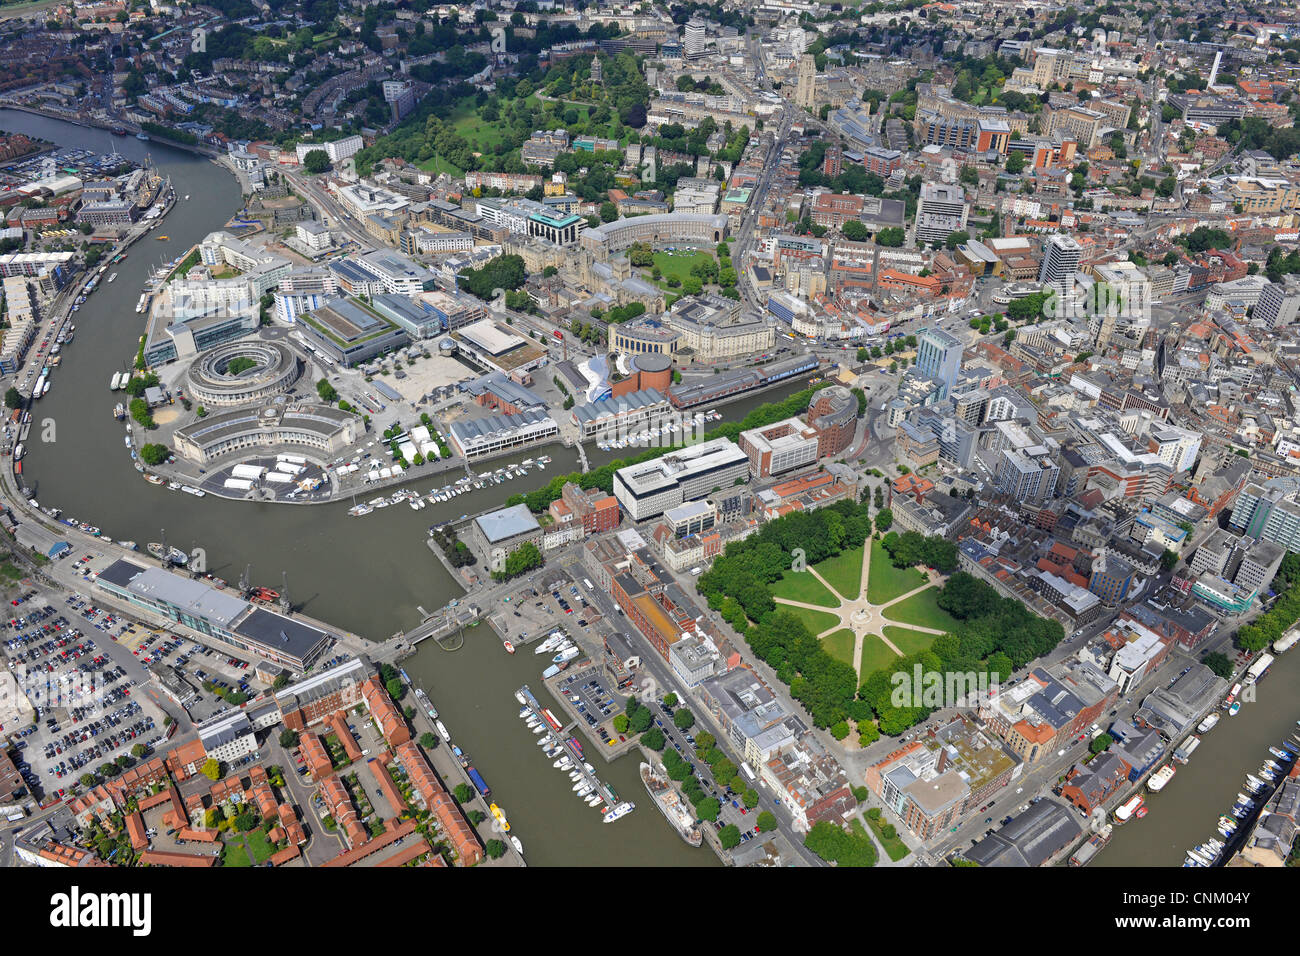 Aerial photograph showing Bristol city centre, River Avon, Queen Square and Harbourside - Stock Image